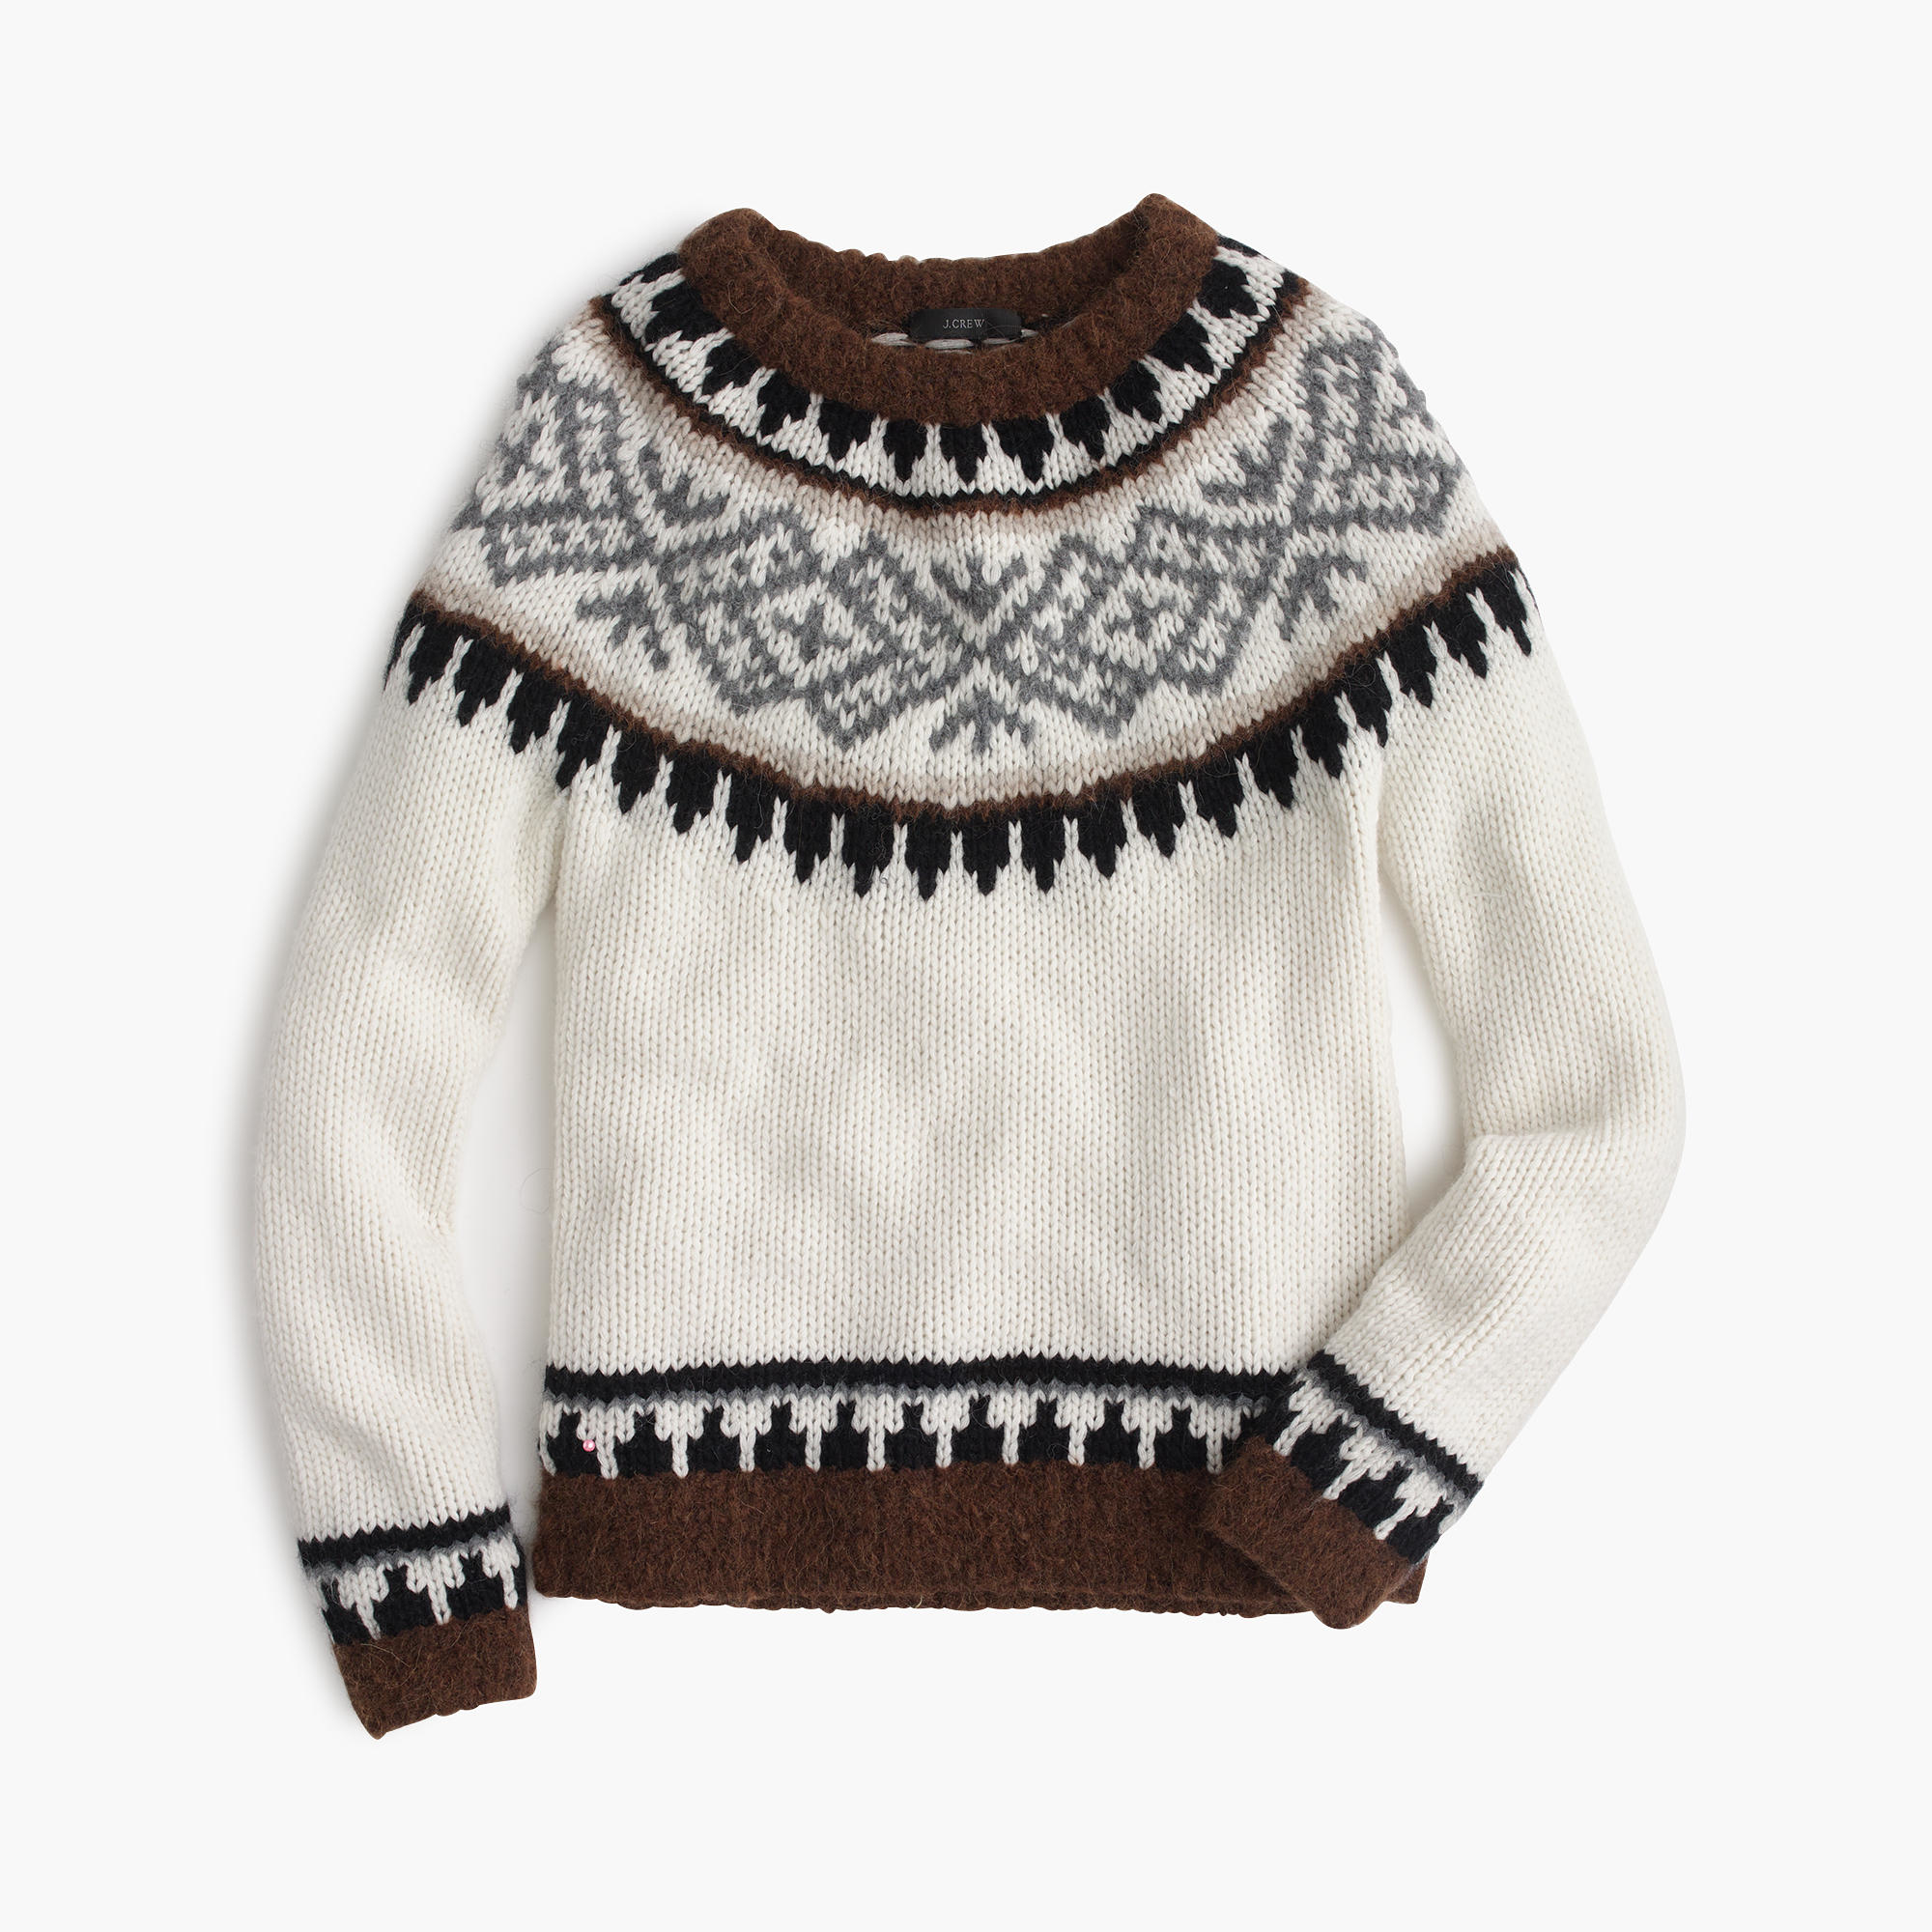 J.crew Collection Fair Isle Sweater In Italian Yarn in Natural for ...